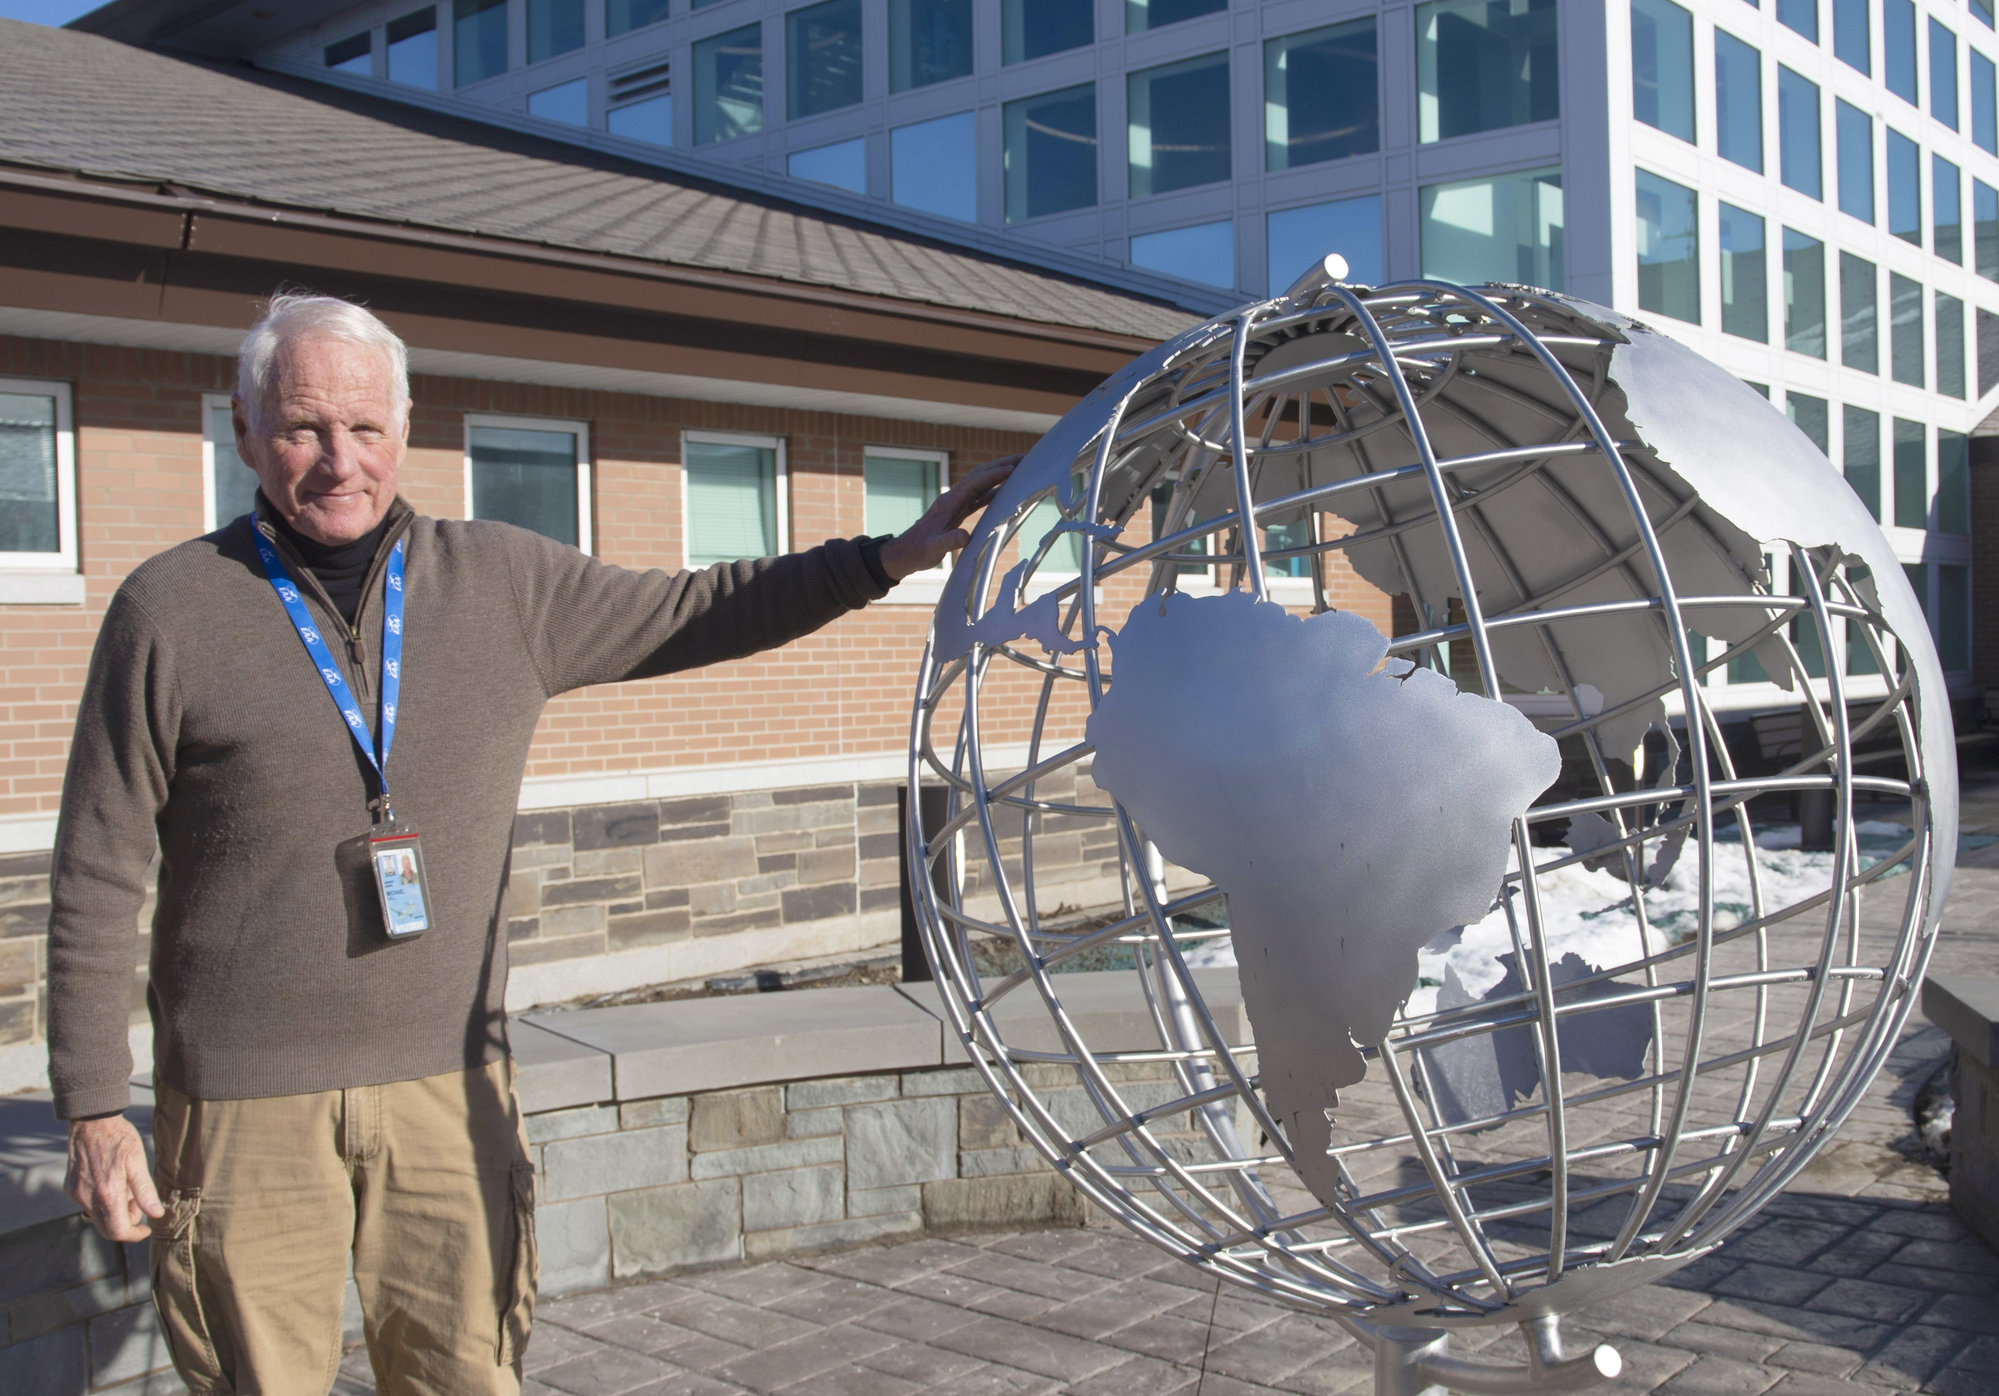 Ithaca-Tompkins International Airport Director Mike Hall stands next to a globe statue, built as part of the airport's expansion that recently completed in late 2019. The statue is meant to symbolize the airport's new global focus, Hall said.